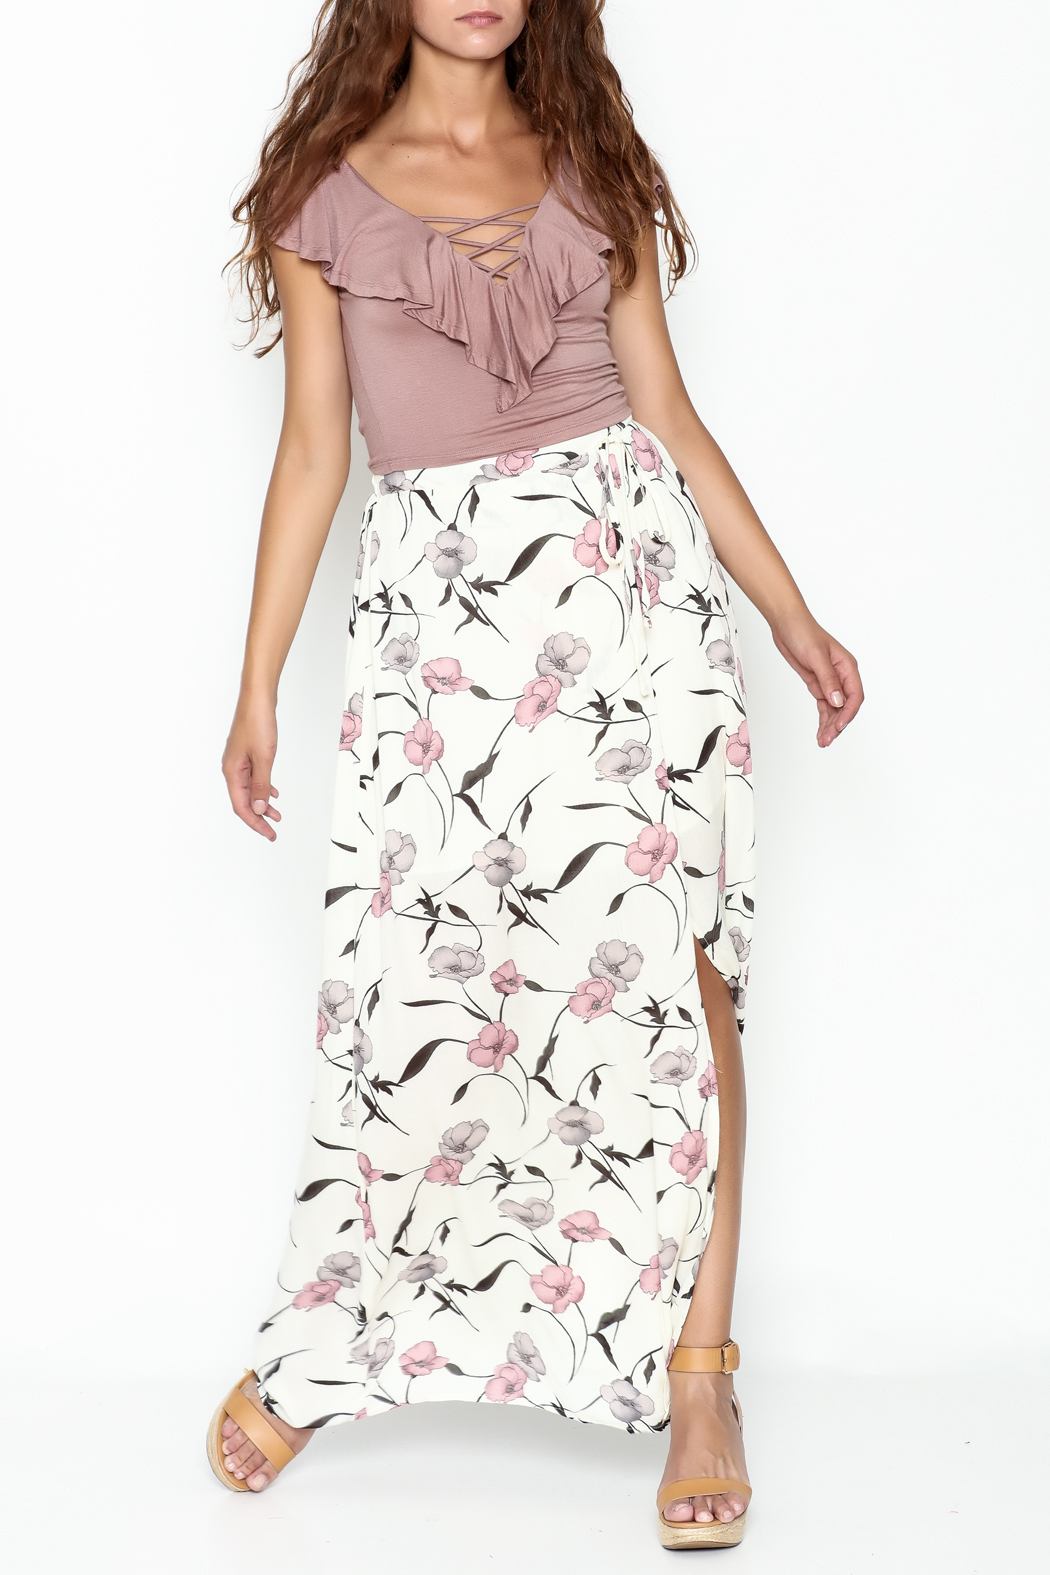 y&i clothing boutique Spaced Floral Maxi Skirt - Side Cropped Image